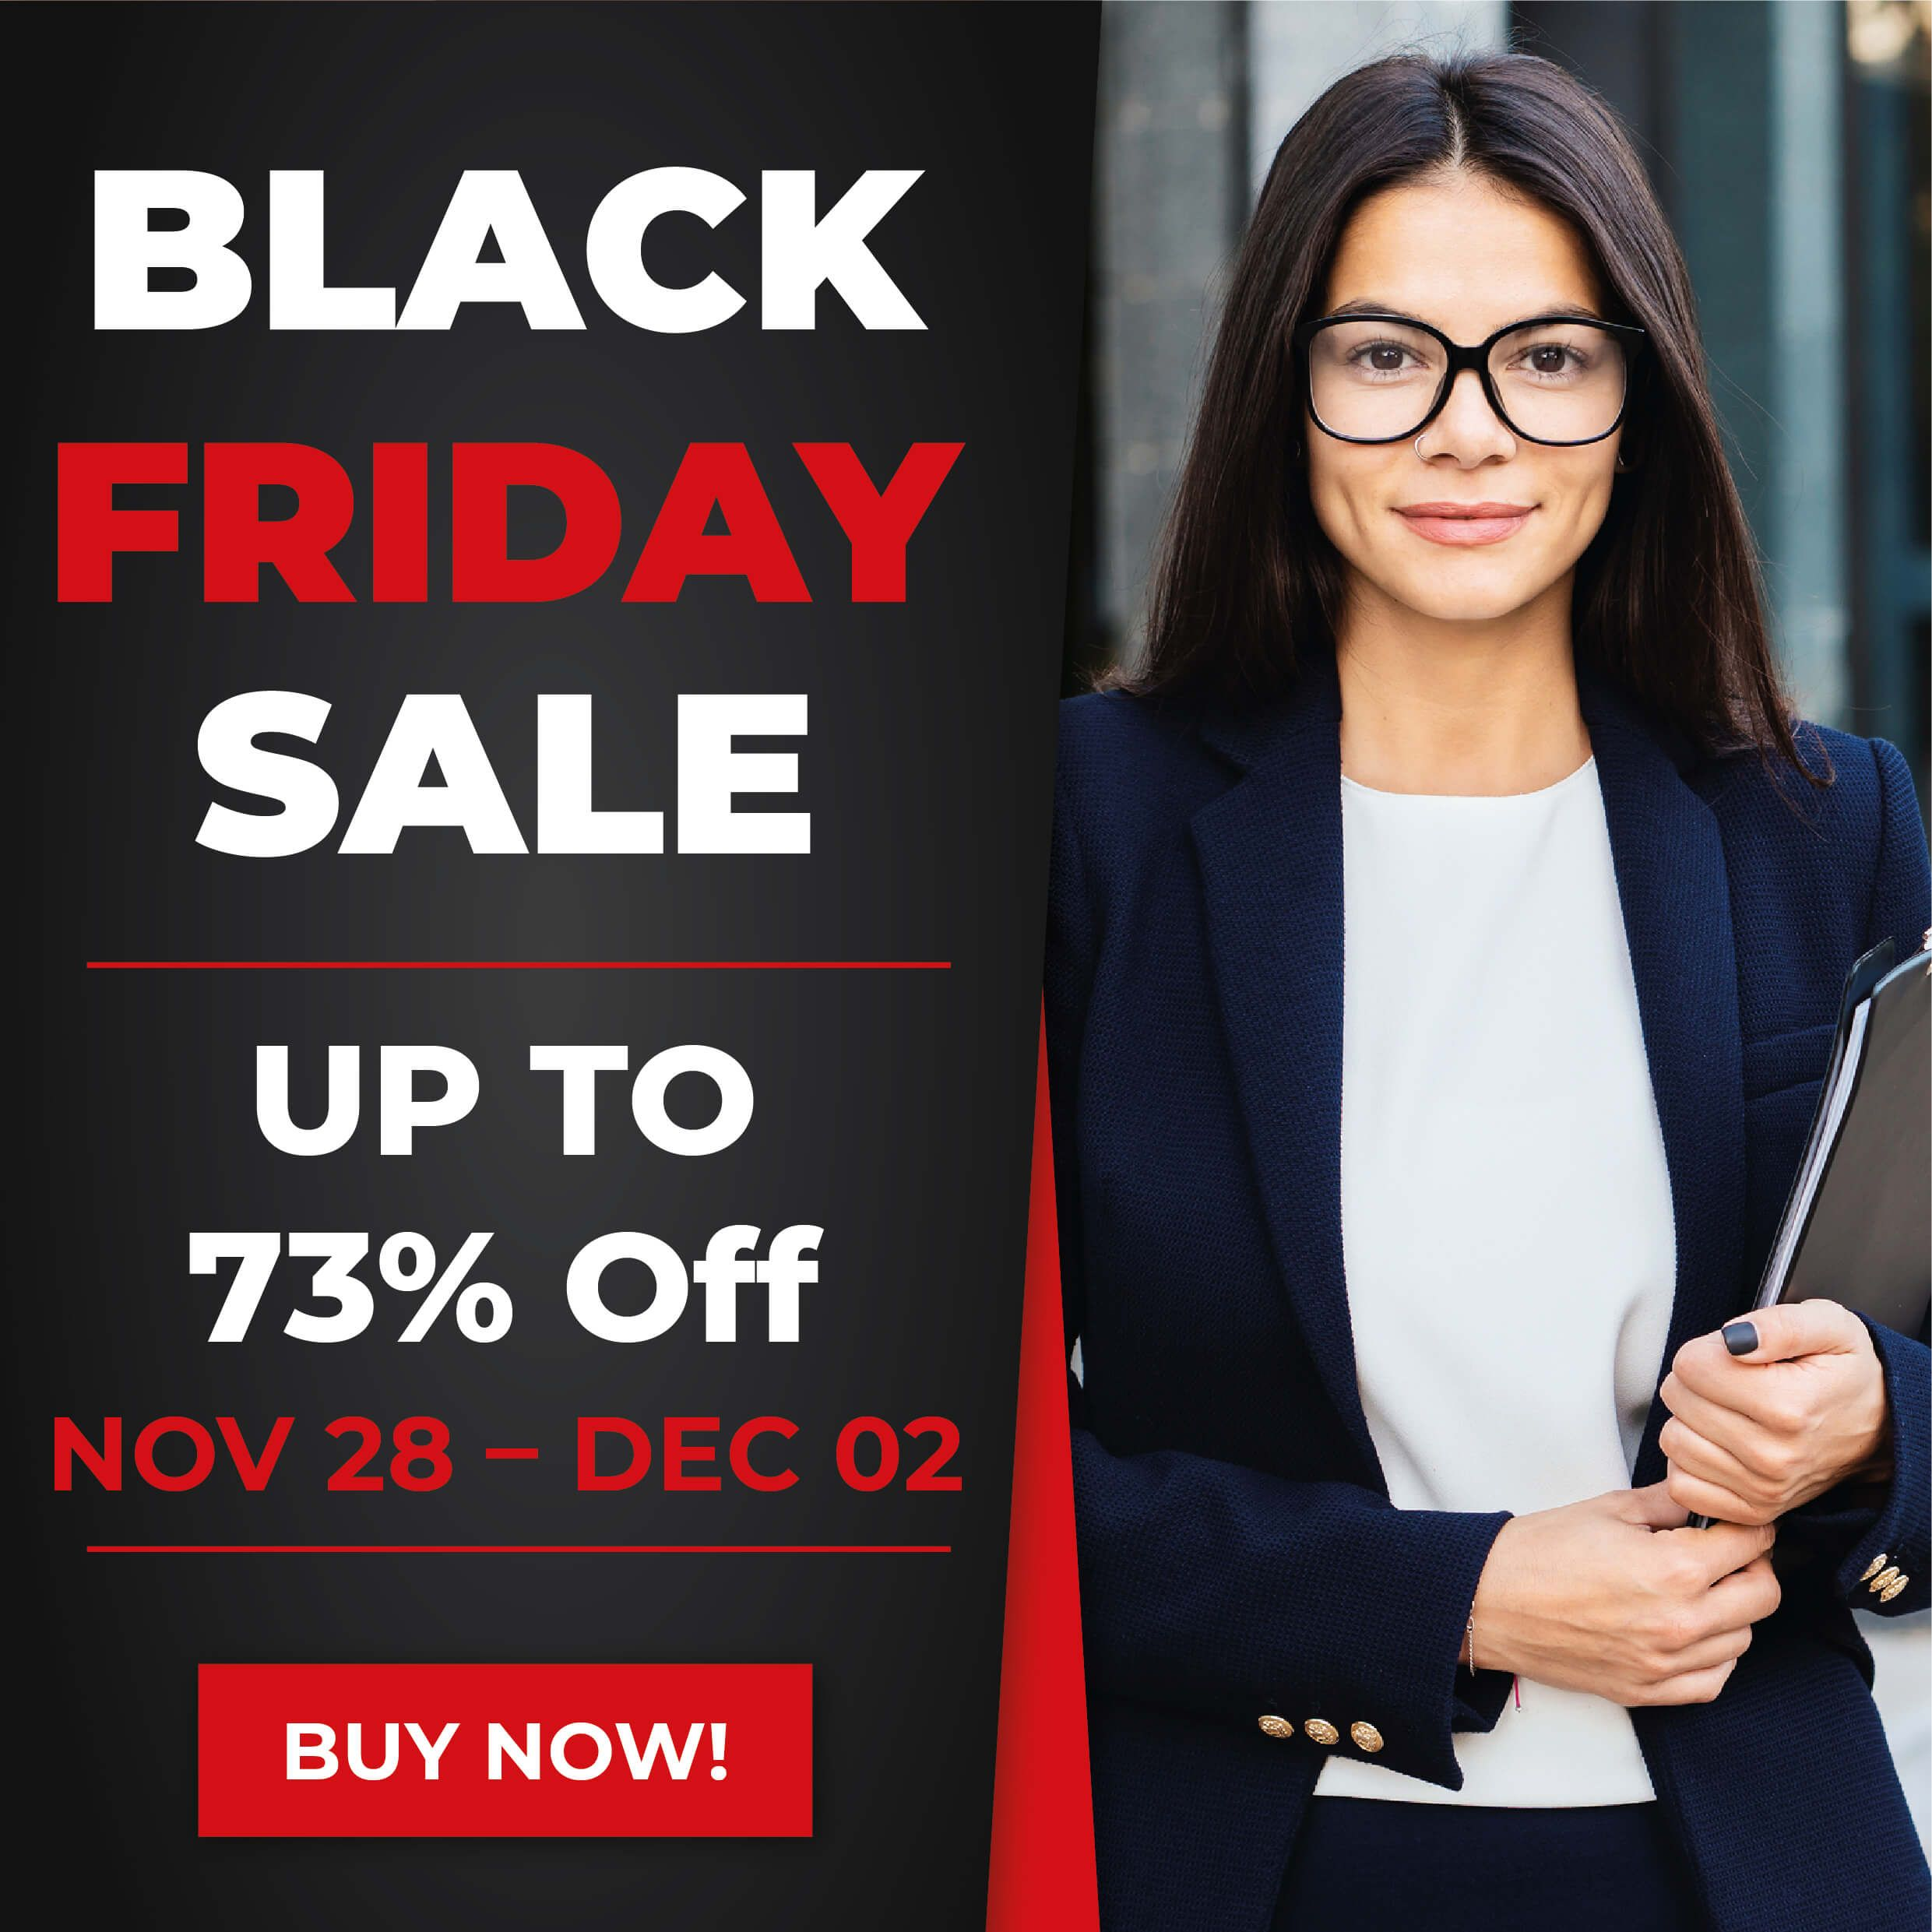 Black Friday Sale Is Live Now Up To 73 Off On Live Online Training And Classroom Courses Black Friday Sale Online Training Black Friday